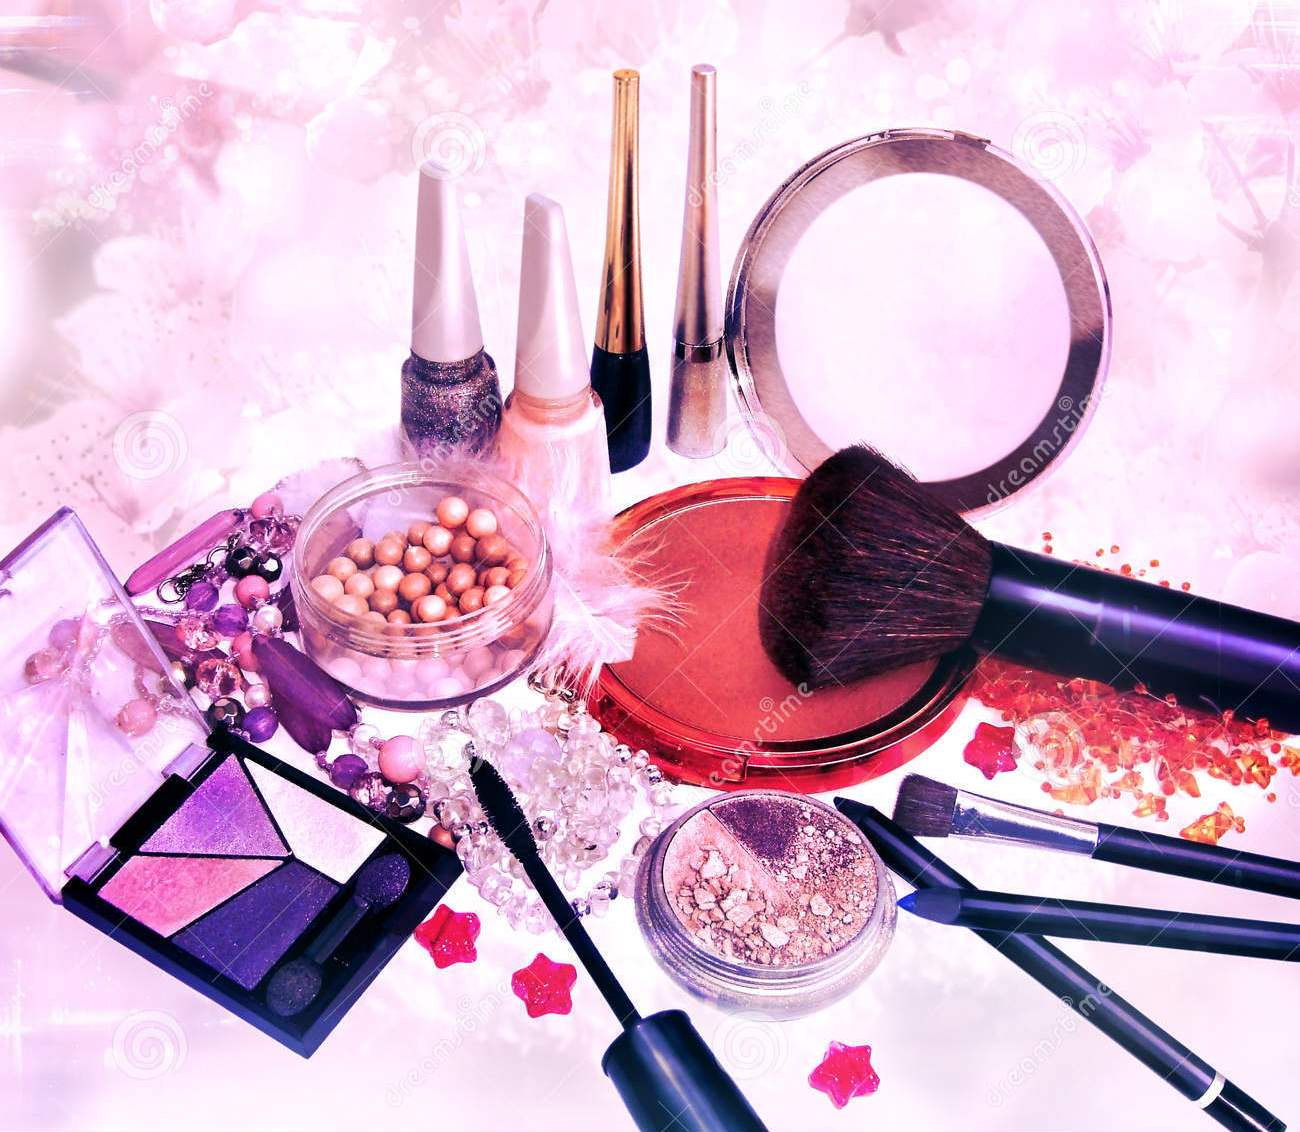 Cosmetics: Health Facts, Natural Remedies & Recipes: Wearing Make-Up